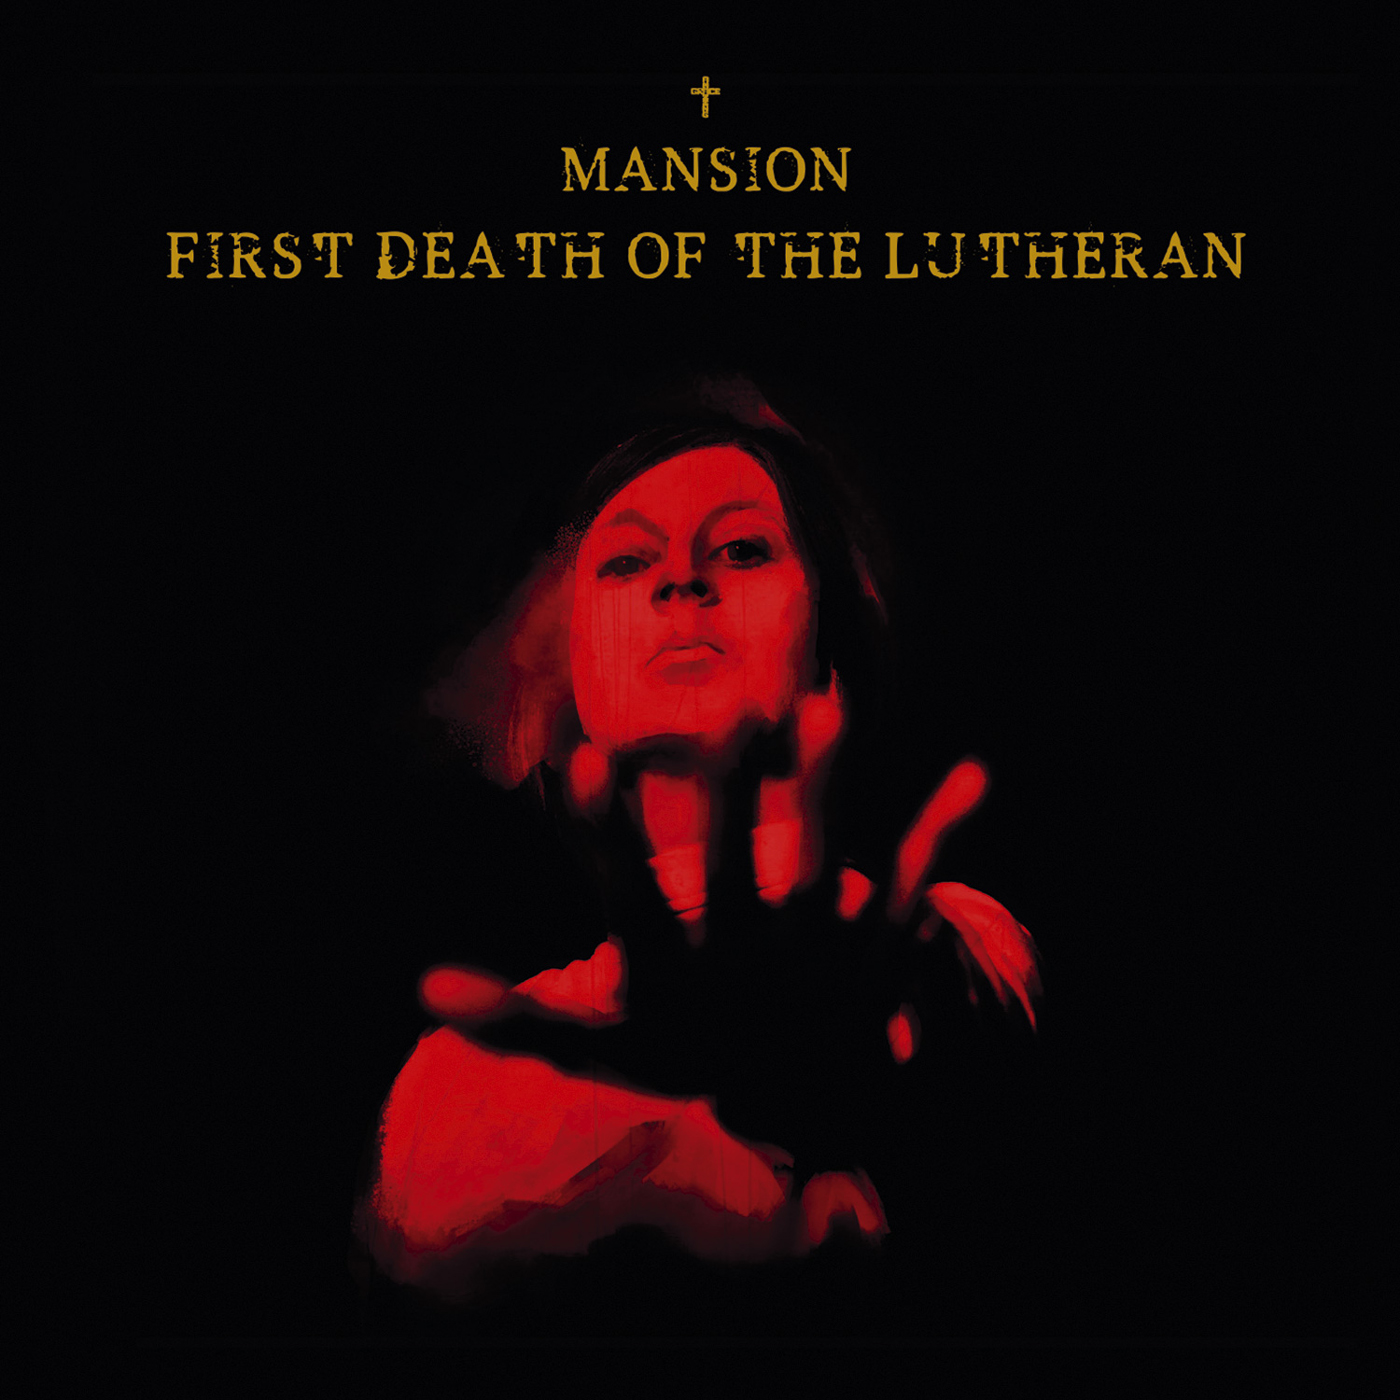 mansion first death of the lutheran